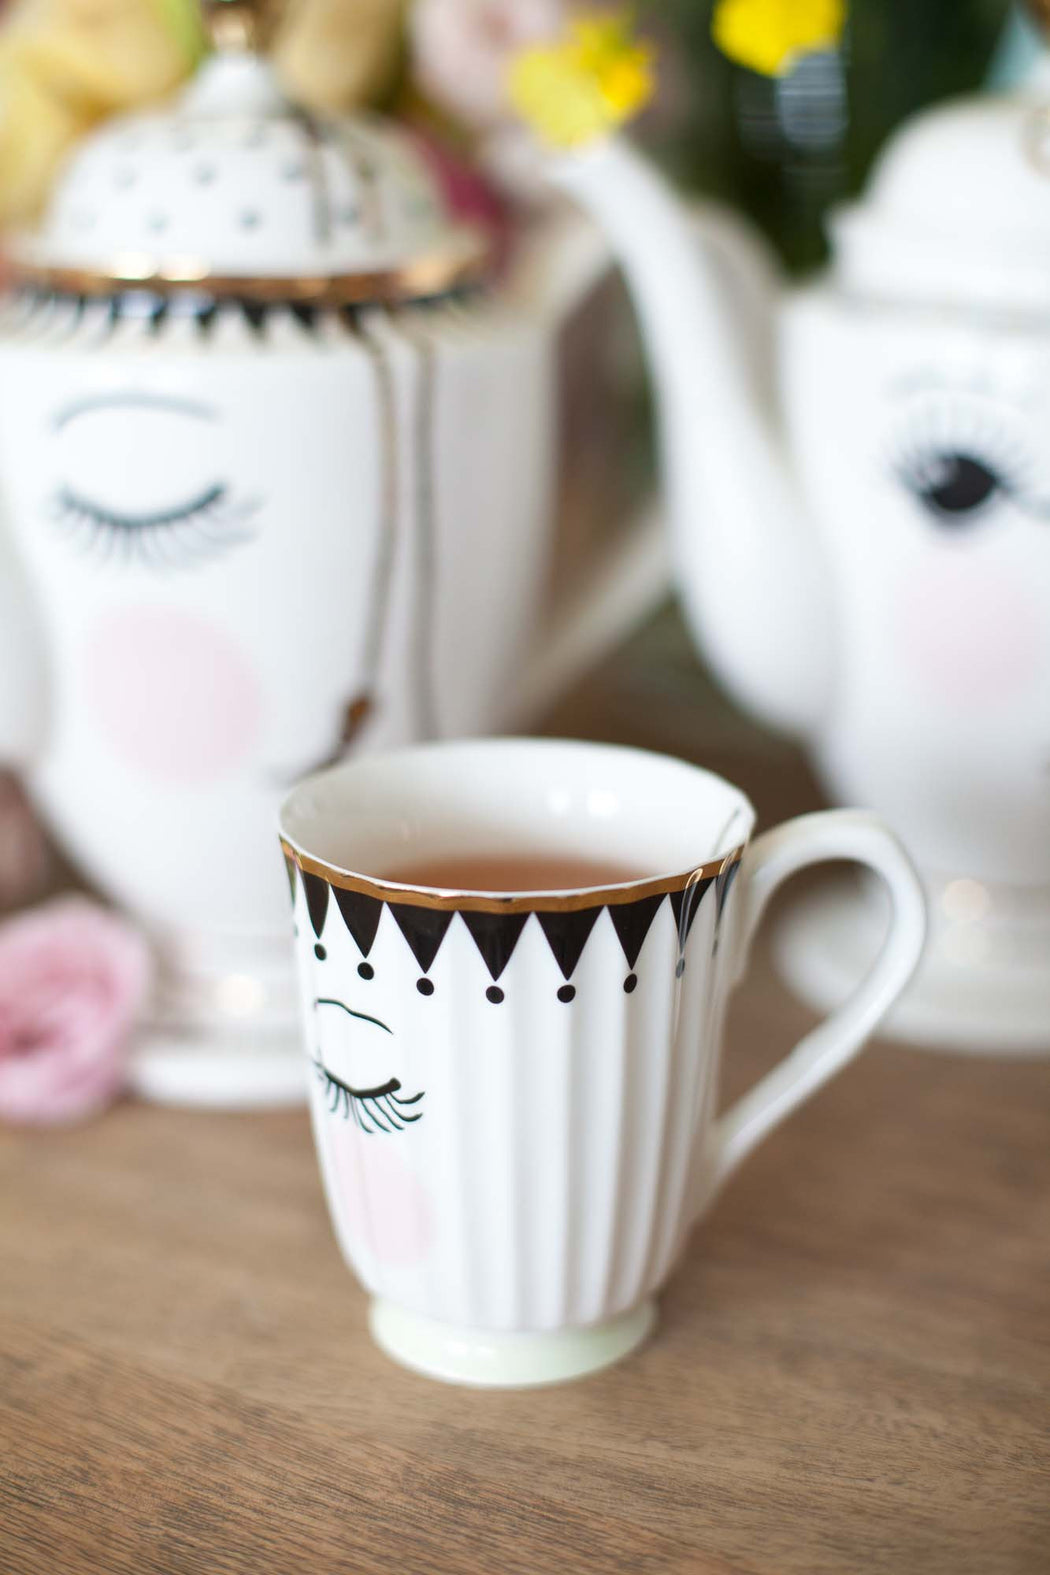 Pretty Eyes Coffee Cup, Drinkware, Miss Etoile - 3LittlePicks